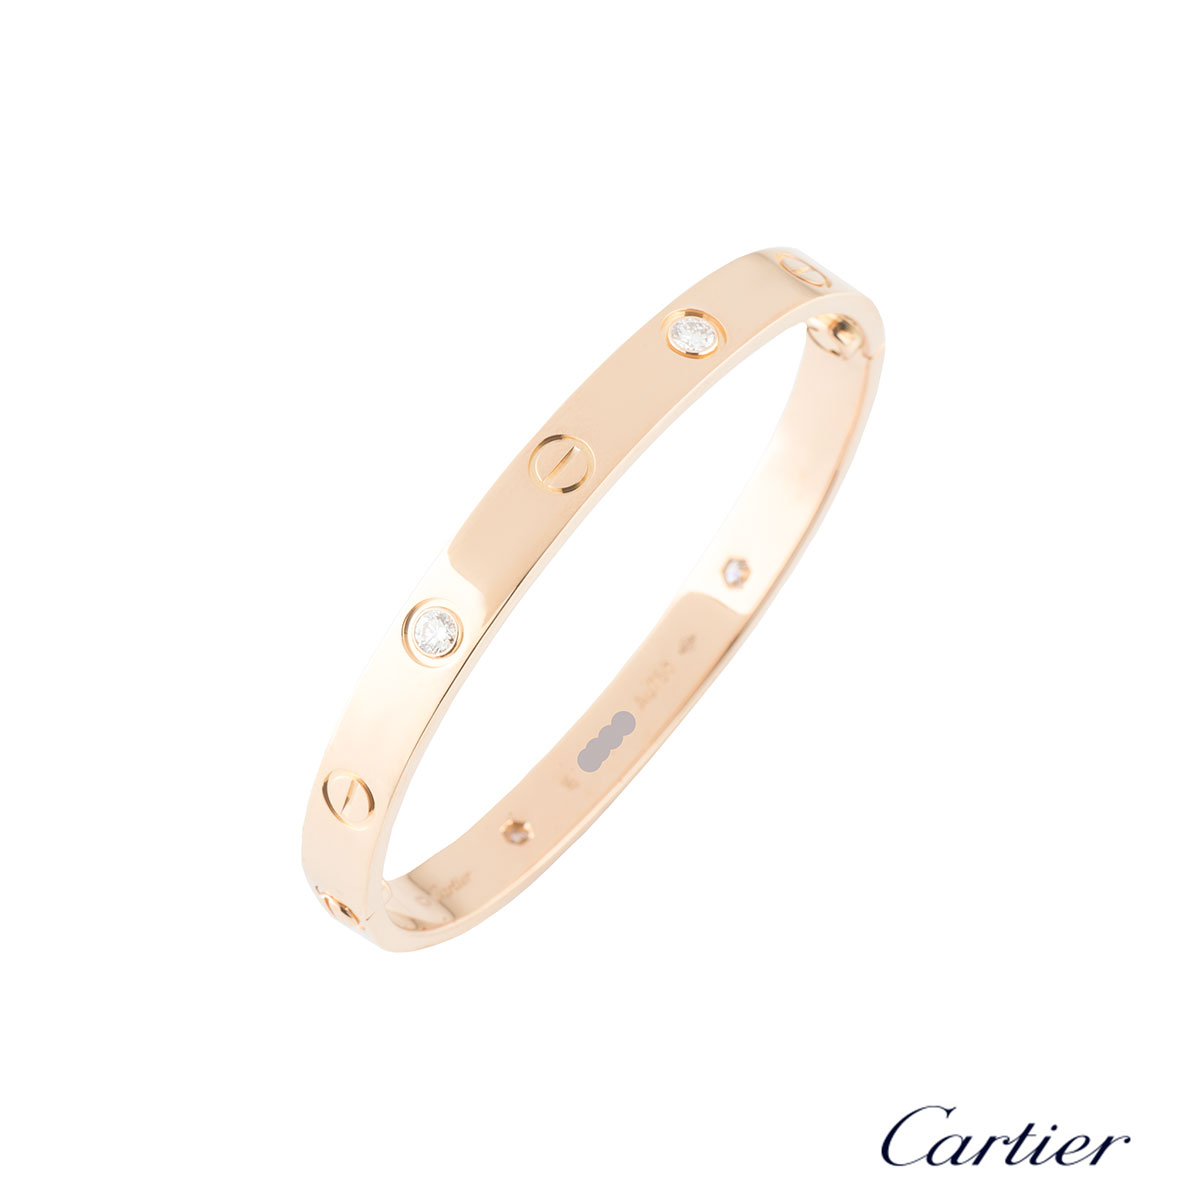 Cartier Rose Gold Half Diamond Love Bracelet Size 16 B6036016